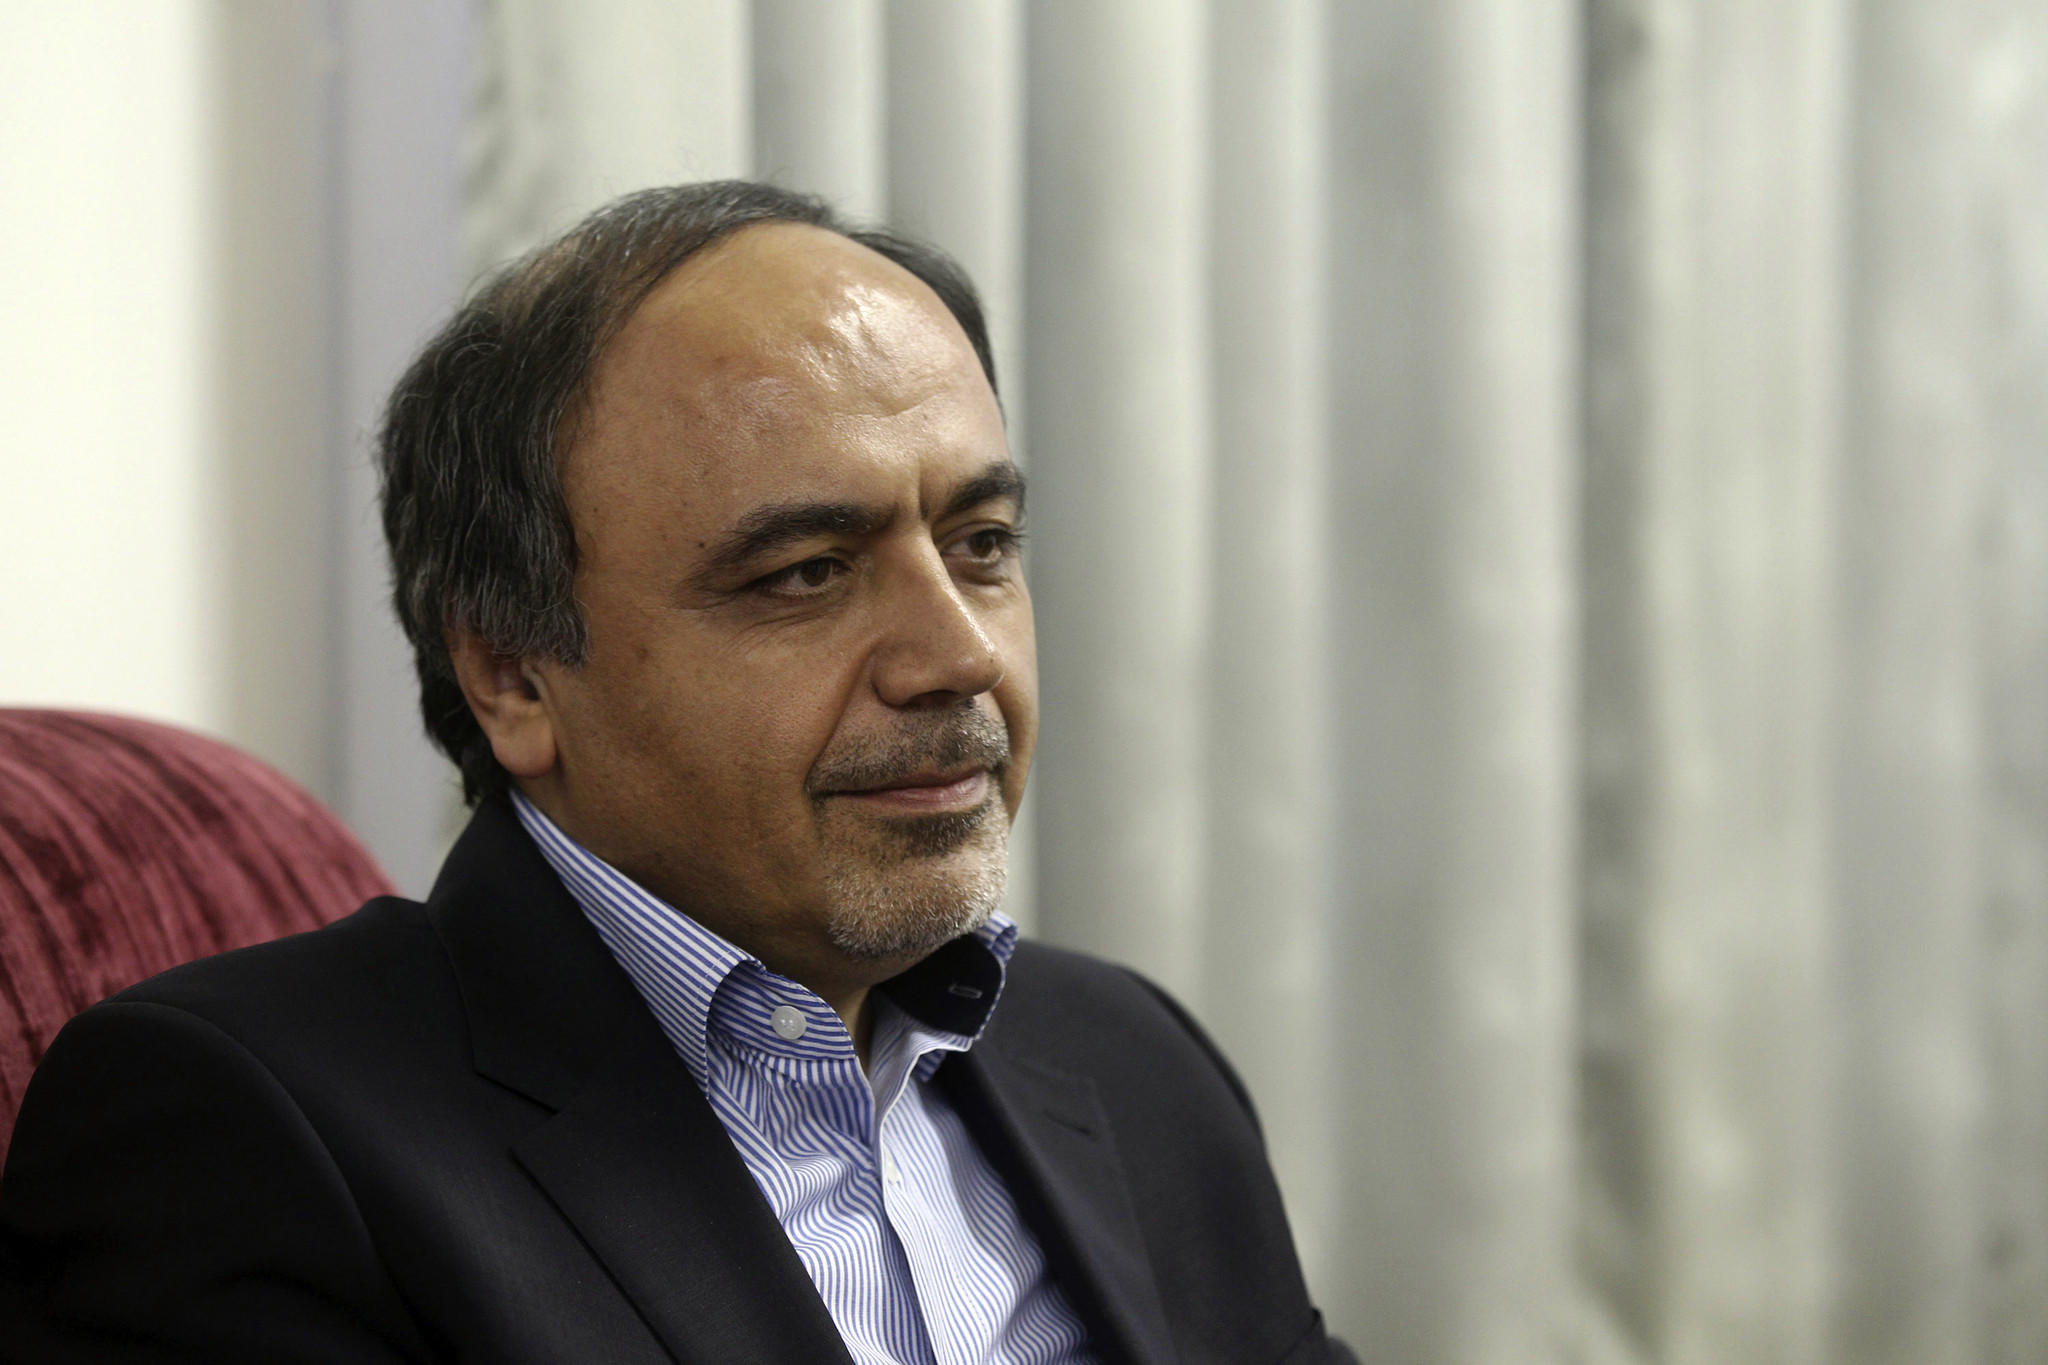 Hamid Aboutalebi, an Iranian diplomat who was recently named as Iran's ambassador to the United Nations, has been barred from receiving a U.S. visa because of his membership in a student group that took over the U.S. Embassy in Tehran in 1979.